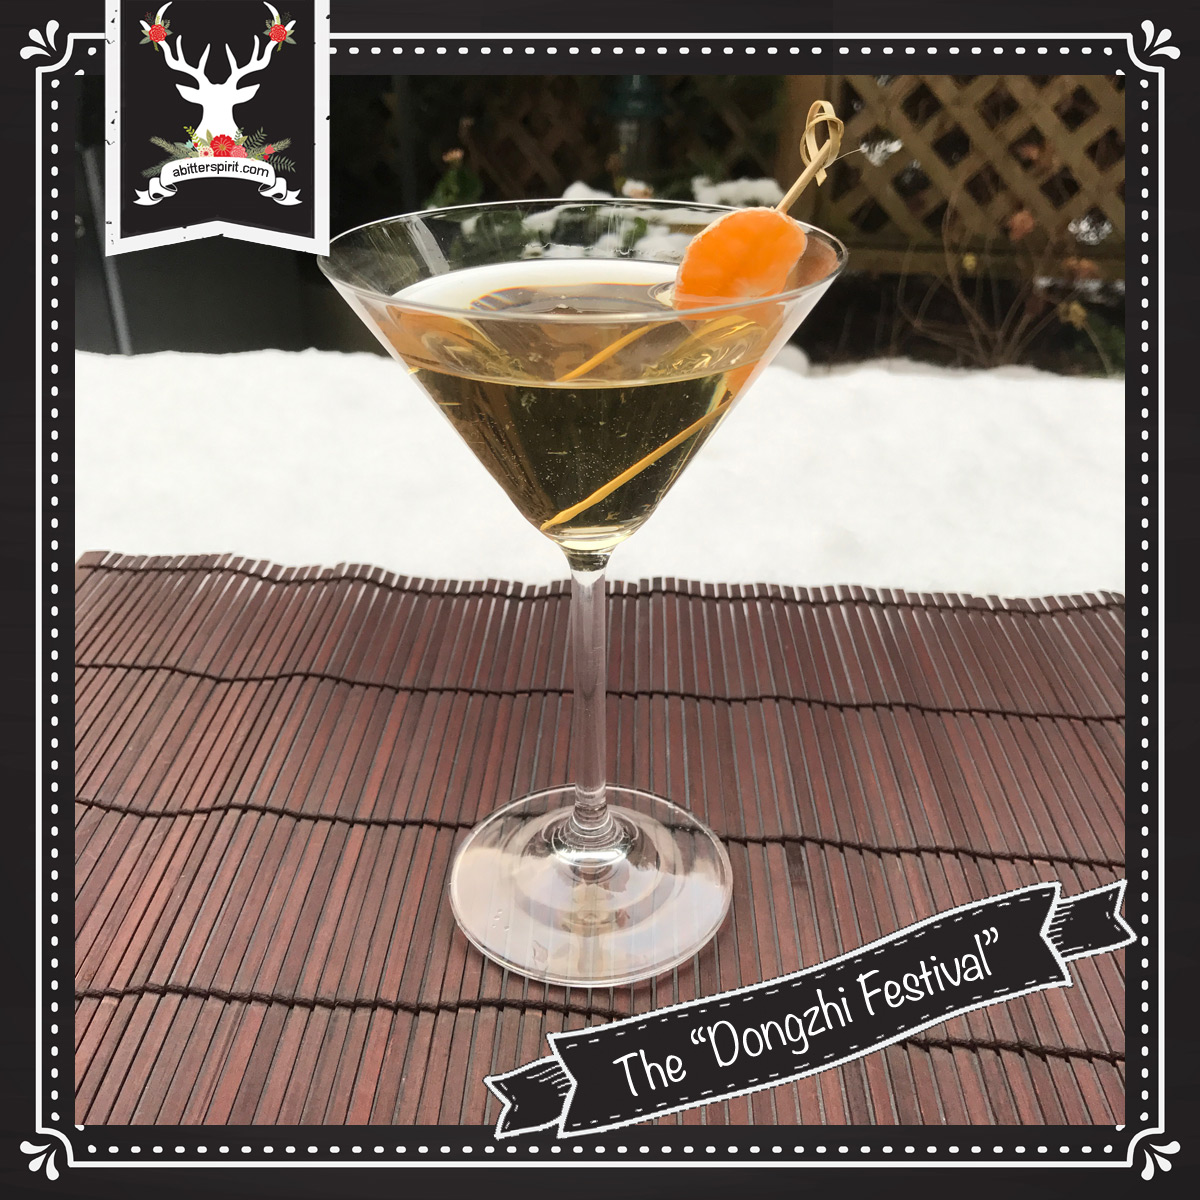 The 'Dongzhi Festival' Cocktail - ABitterSpirit.com